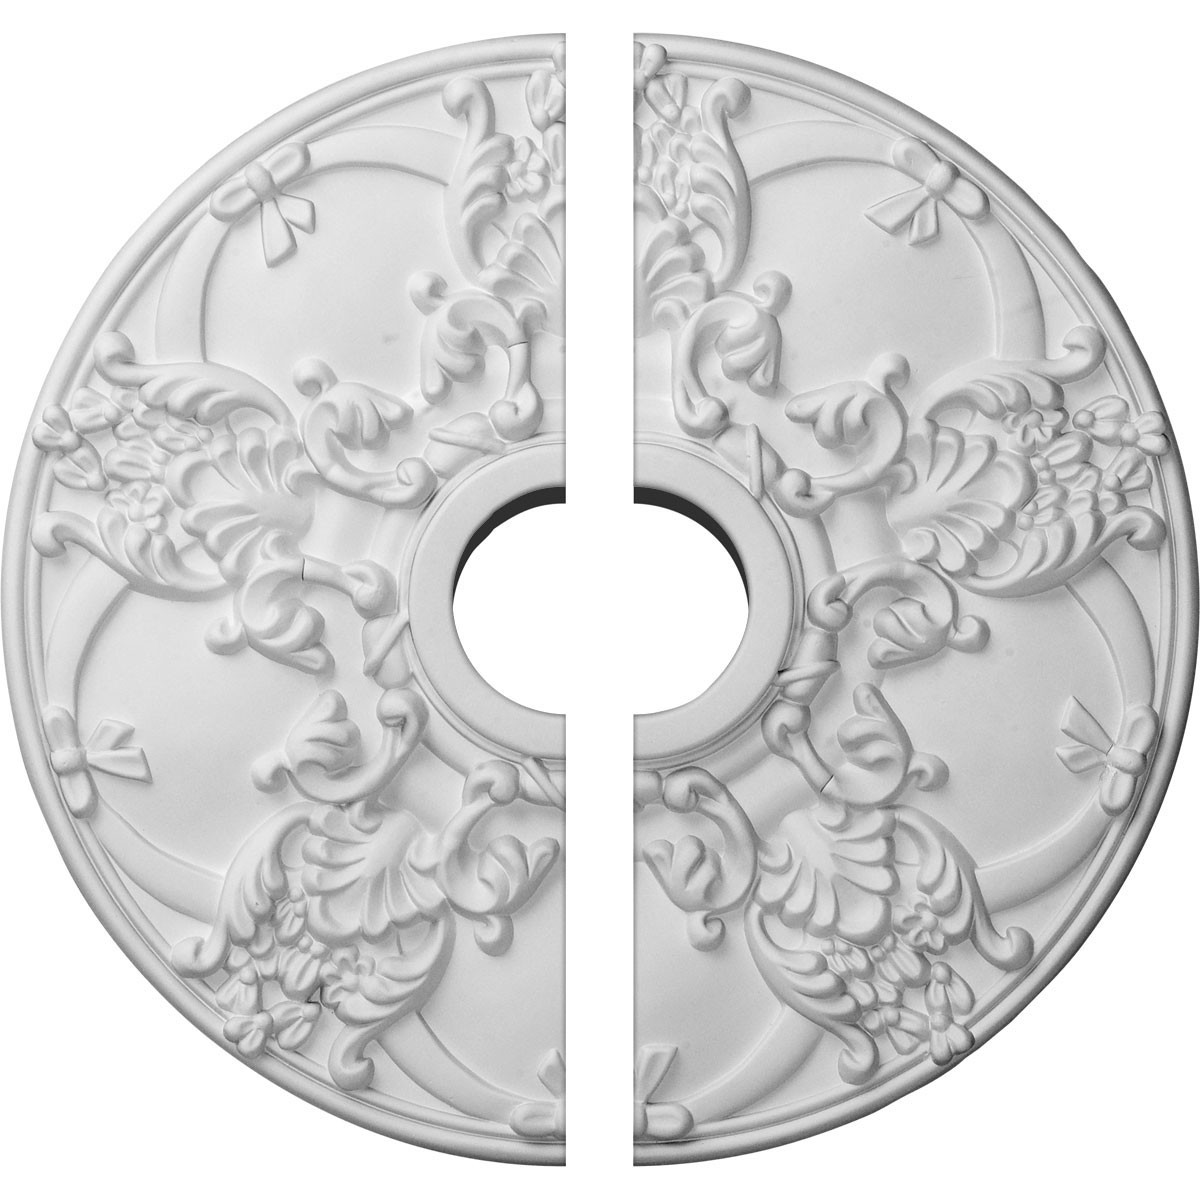 """EM-CM18NO2 - 18""""OD x 3 1/2""""ID x 1 3/8""""P Norwich Ceiling Medallion, Two Piece (Fits Canopies up to 4 1/2"""")"""